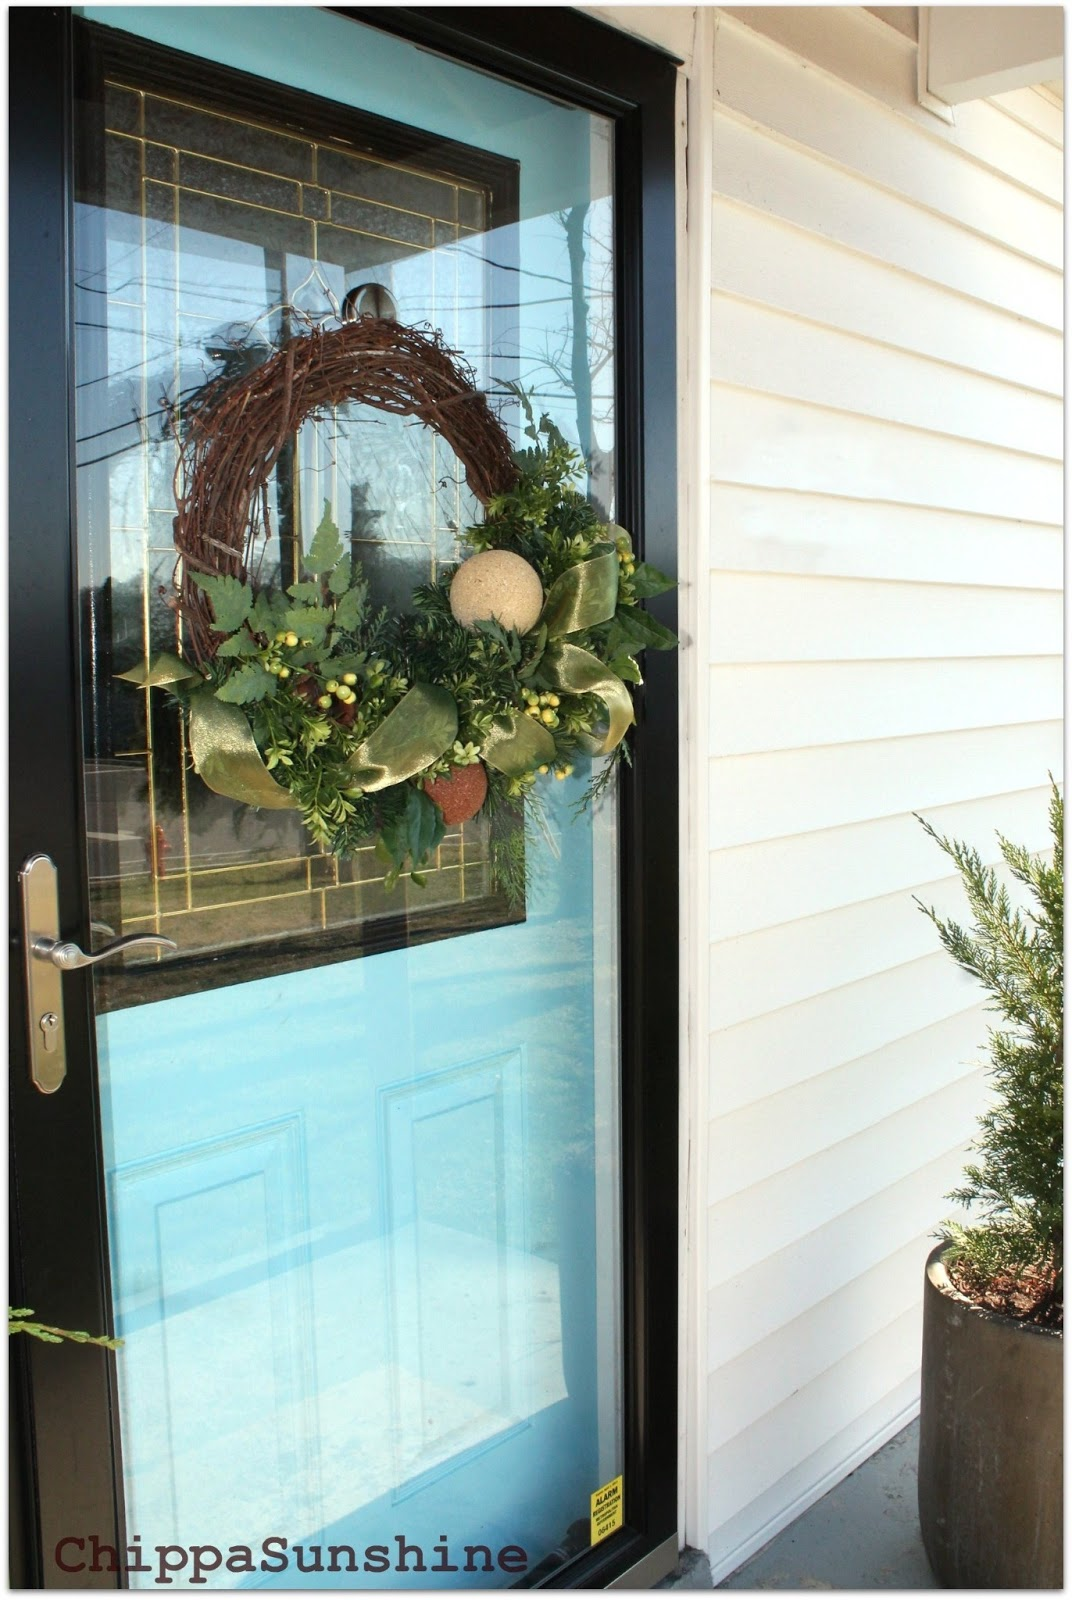 3 Ways to Hang A Wreath on a Storm Door